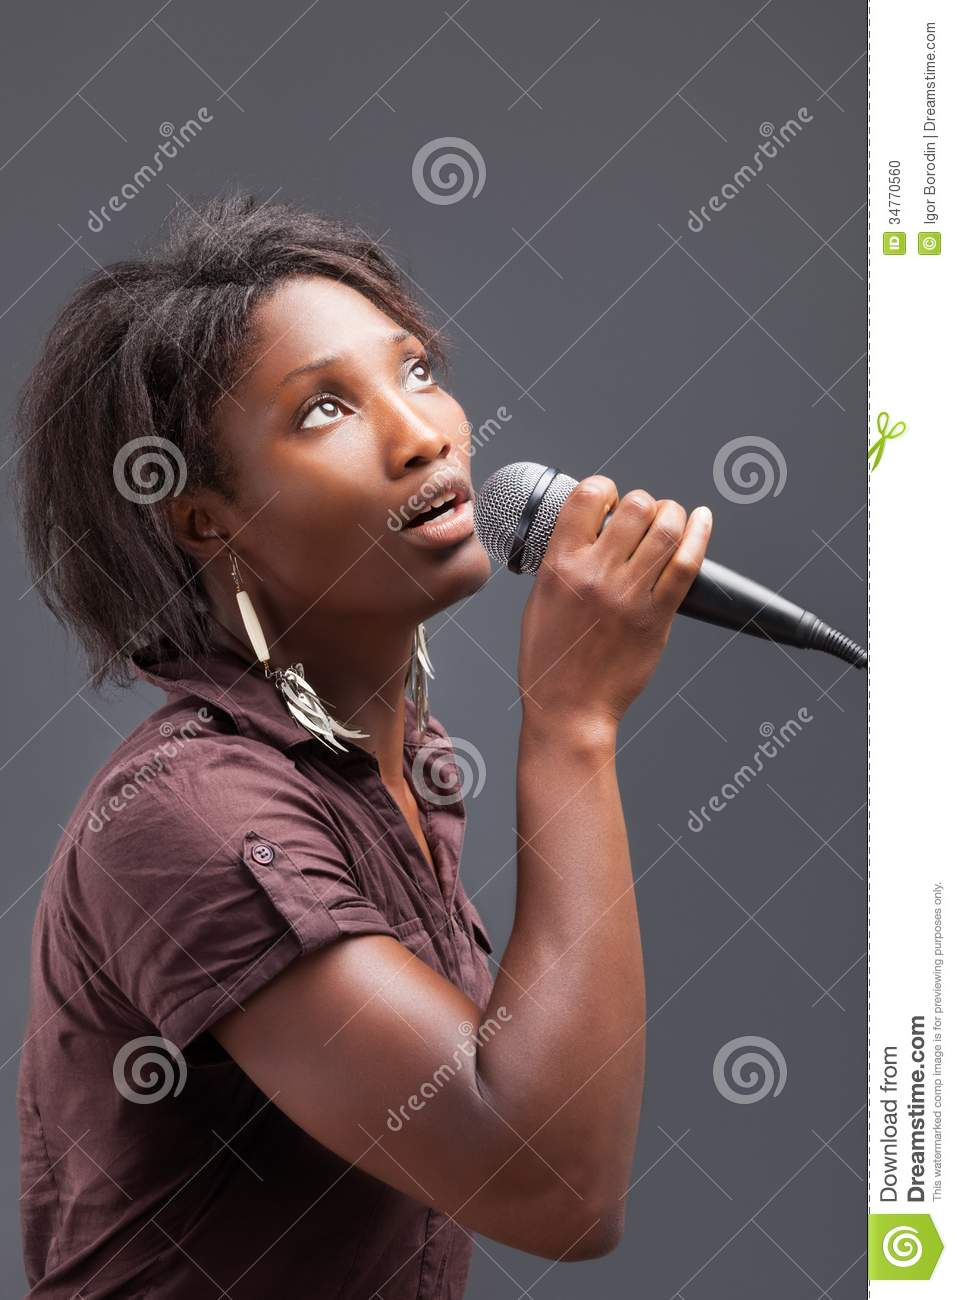 blackwomen-girl-singing-free-teen-nn-pornos